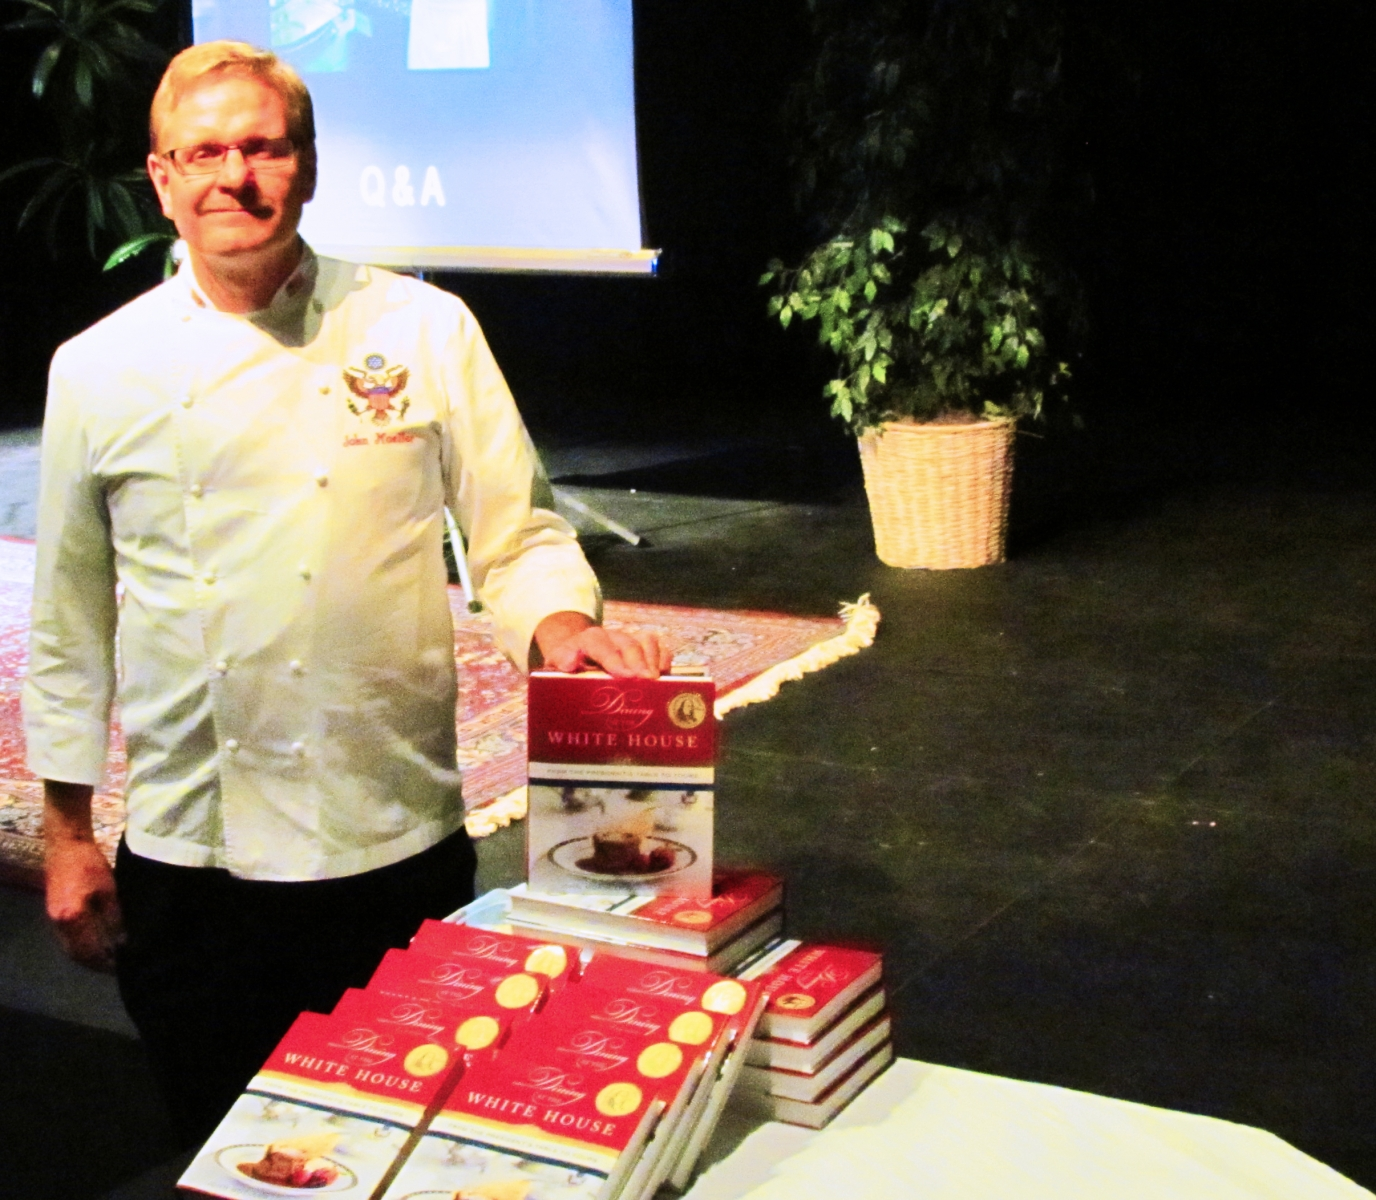 White House Chef Moeller in front of his book